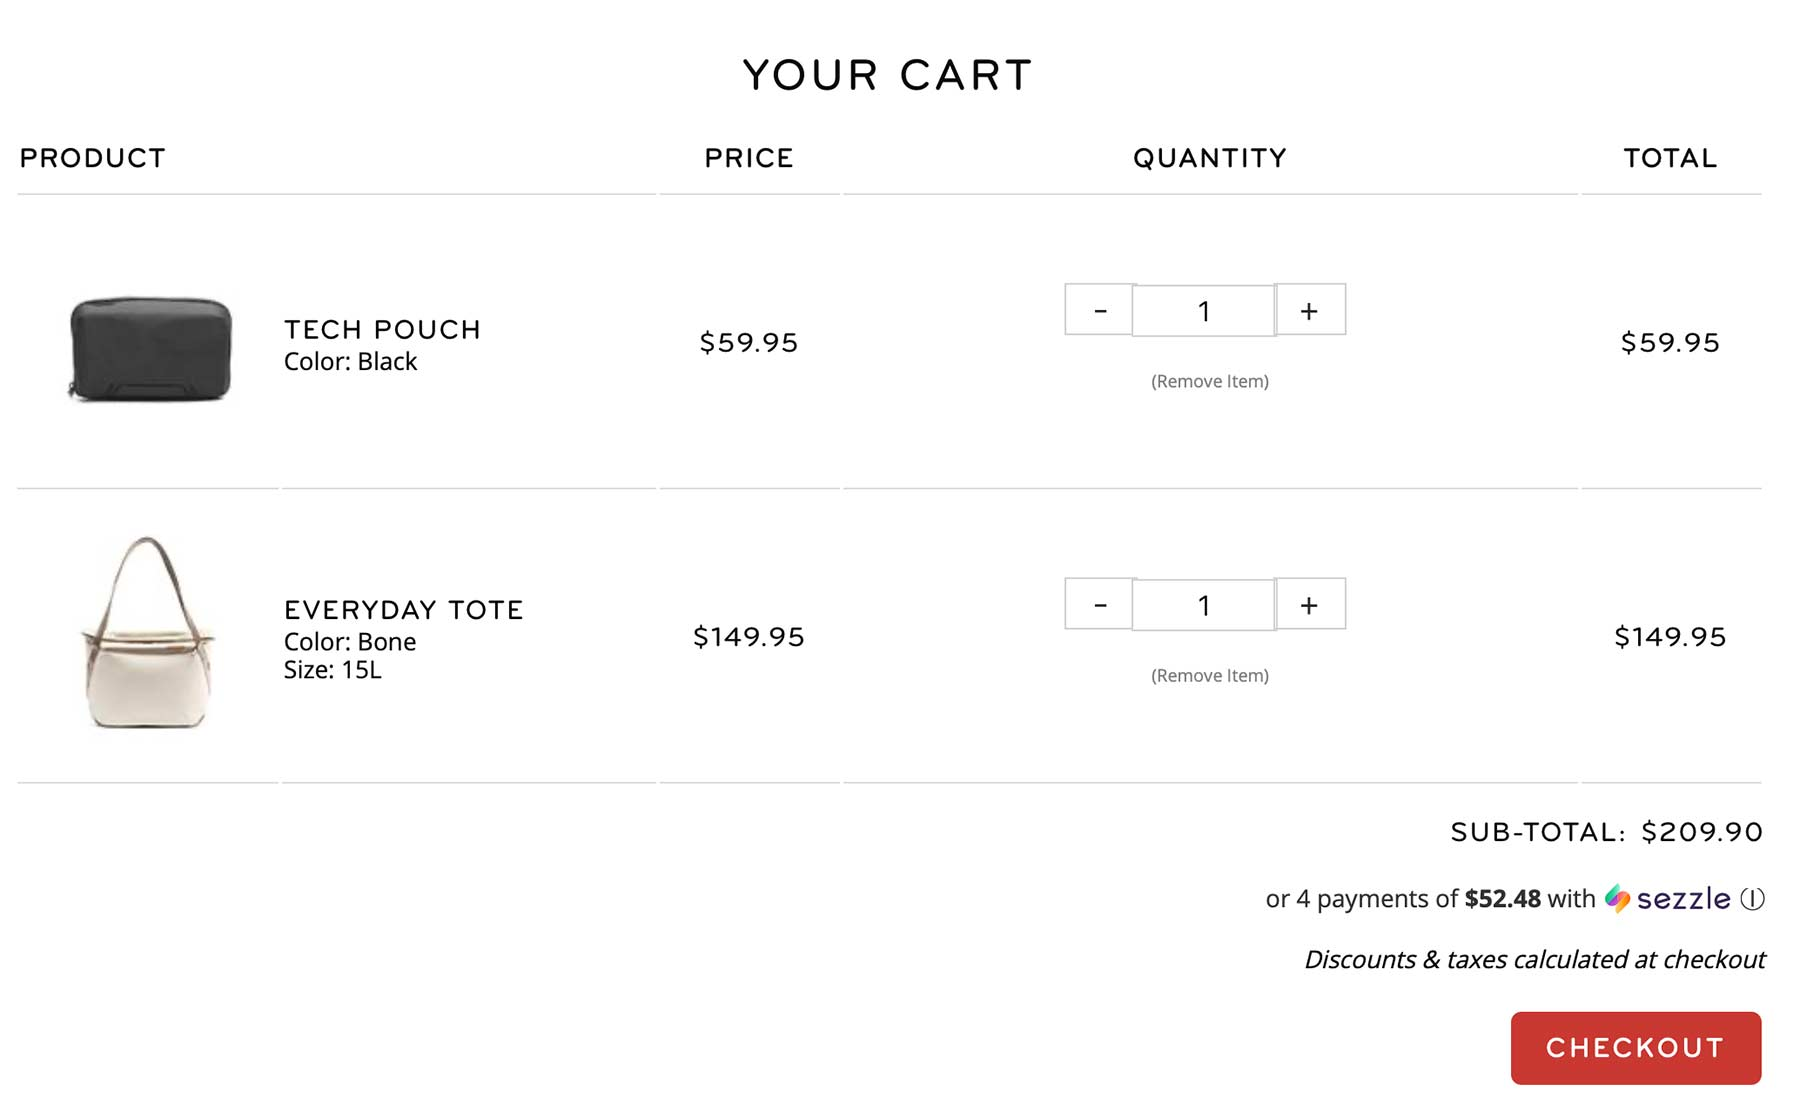 Shopping cart page displaying product photos and details